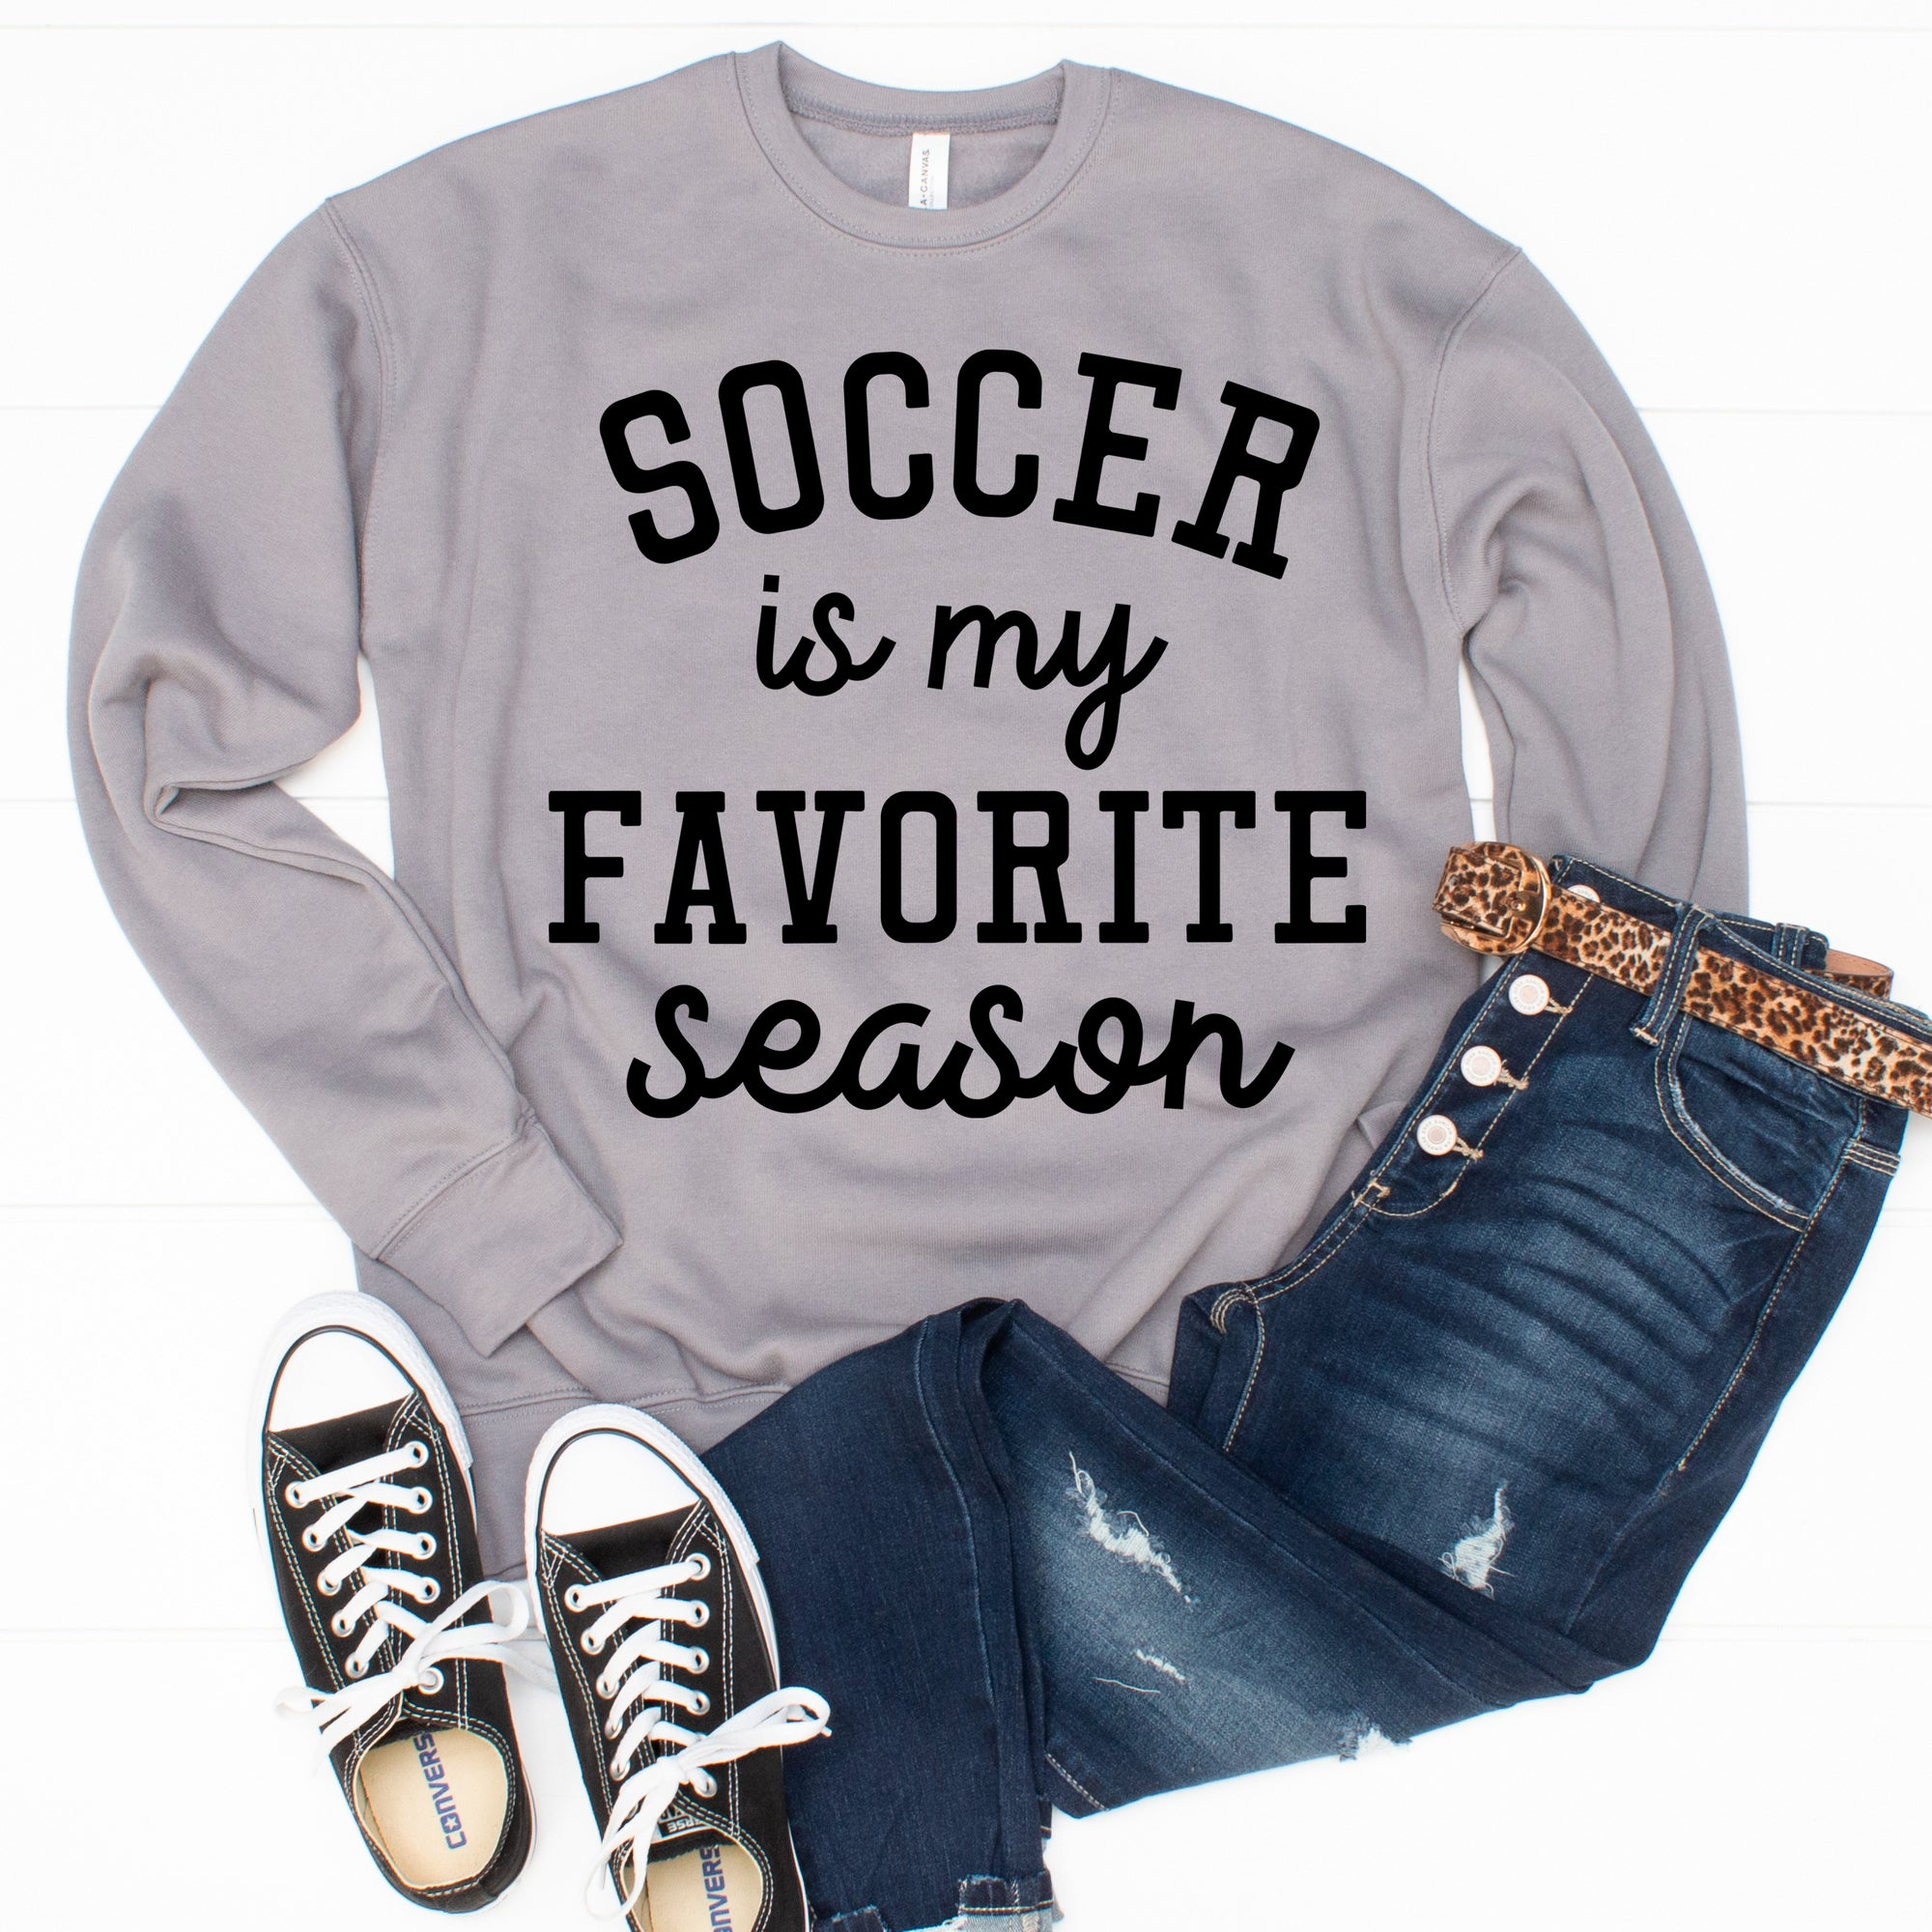 Favorite Season Sweatshirt - Soccer - Limeberry Designs